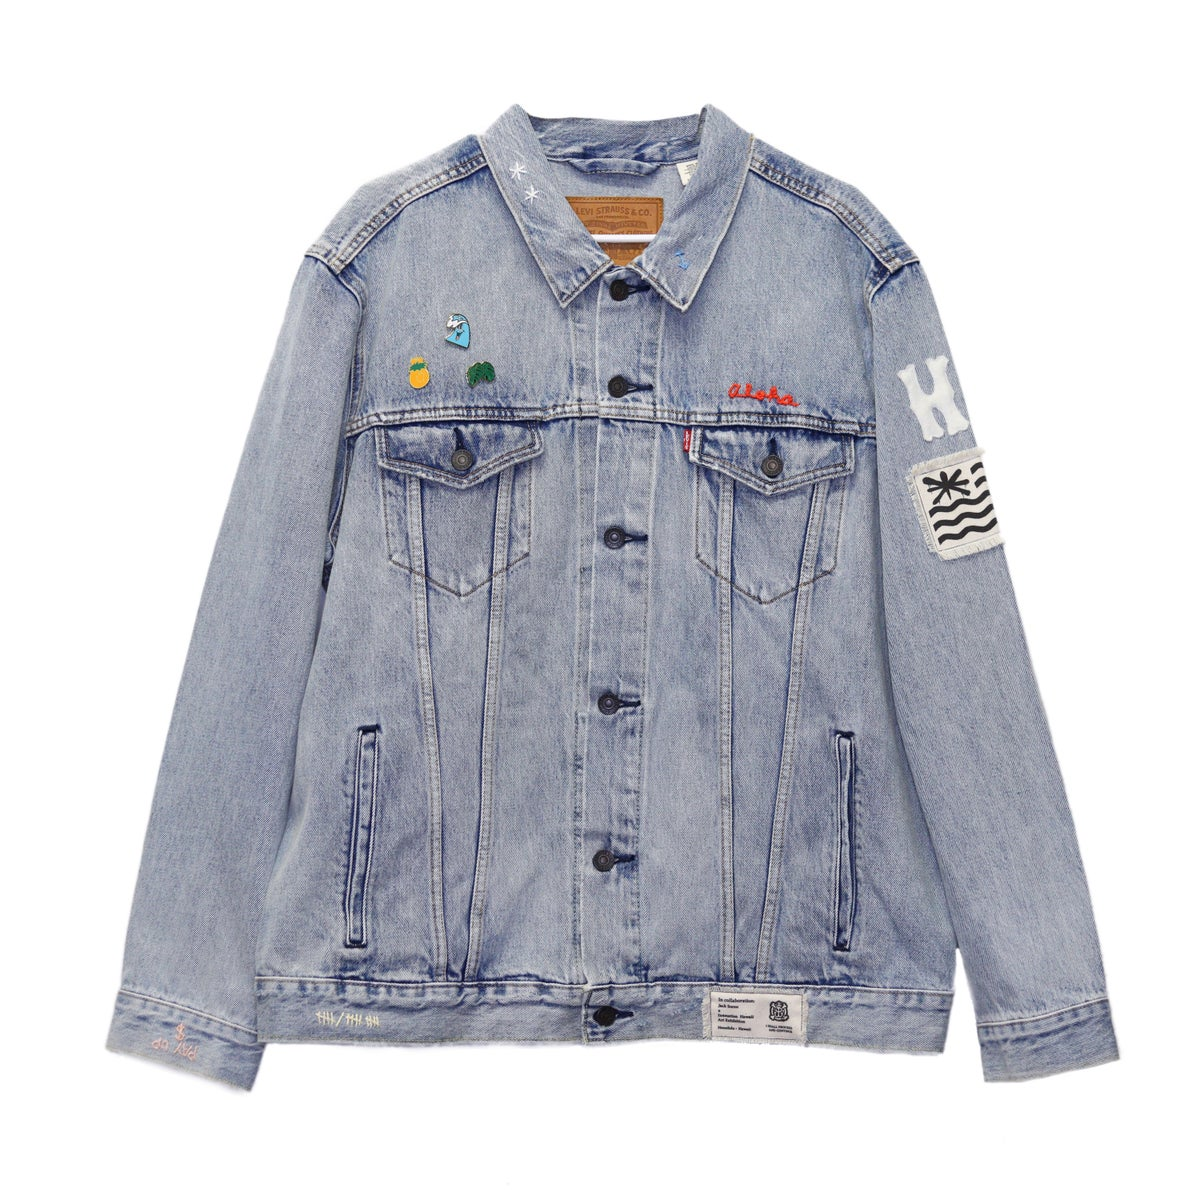 Image of Jack Soren x In4mation Denim Jacket No. 5/10.  Size XXL